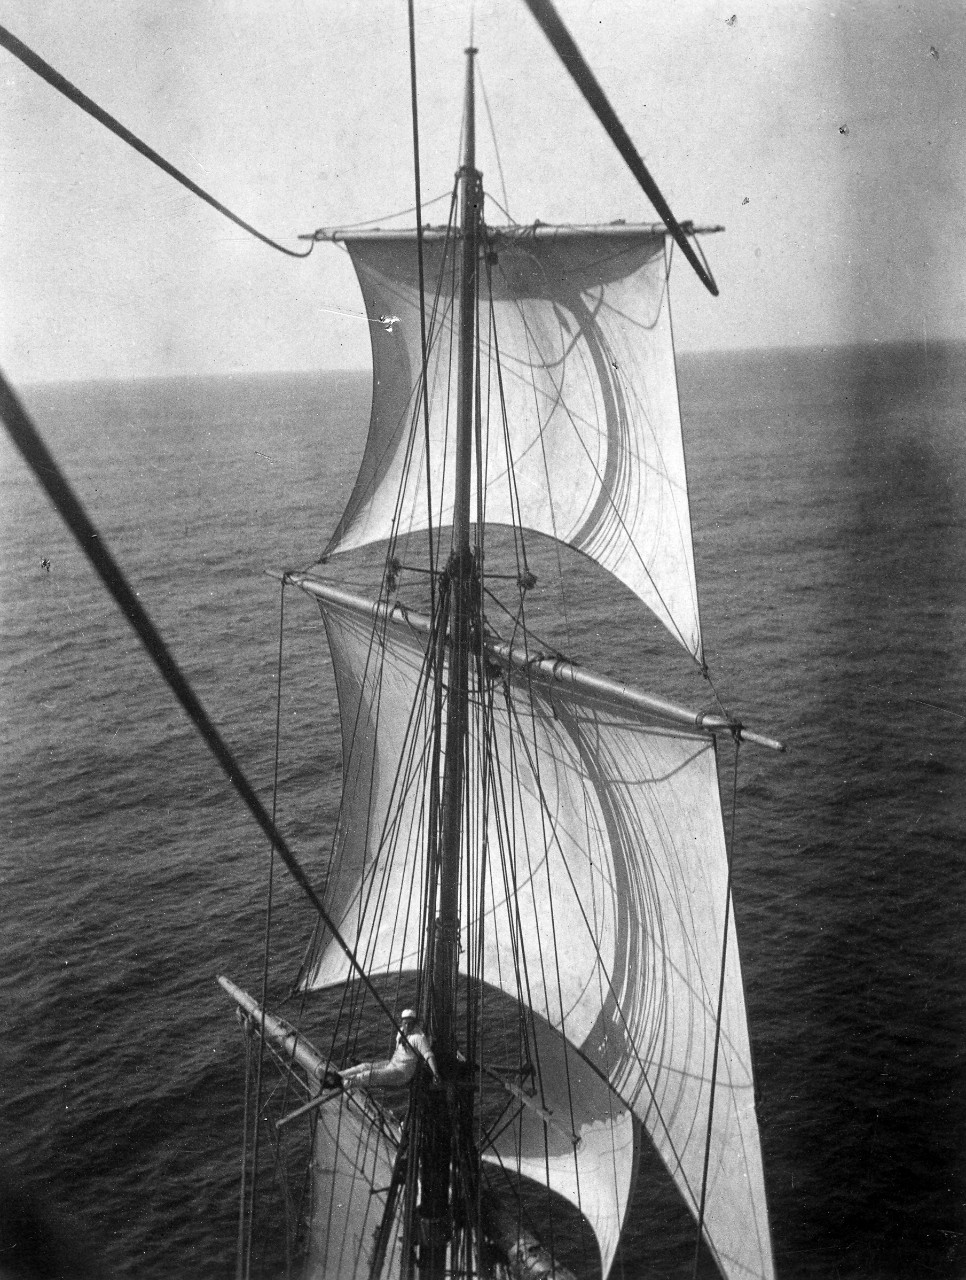 A midshipman sitting in the rigging on the training vessel USS Chesapeake, 1902. He is a member of Naval Academy class of 1905. Image is from the Clarence Grace Collection.